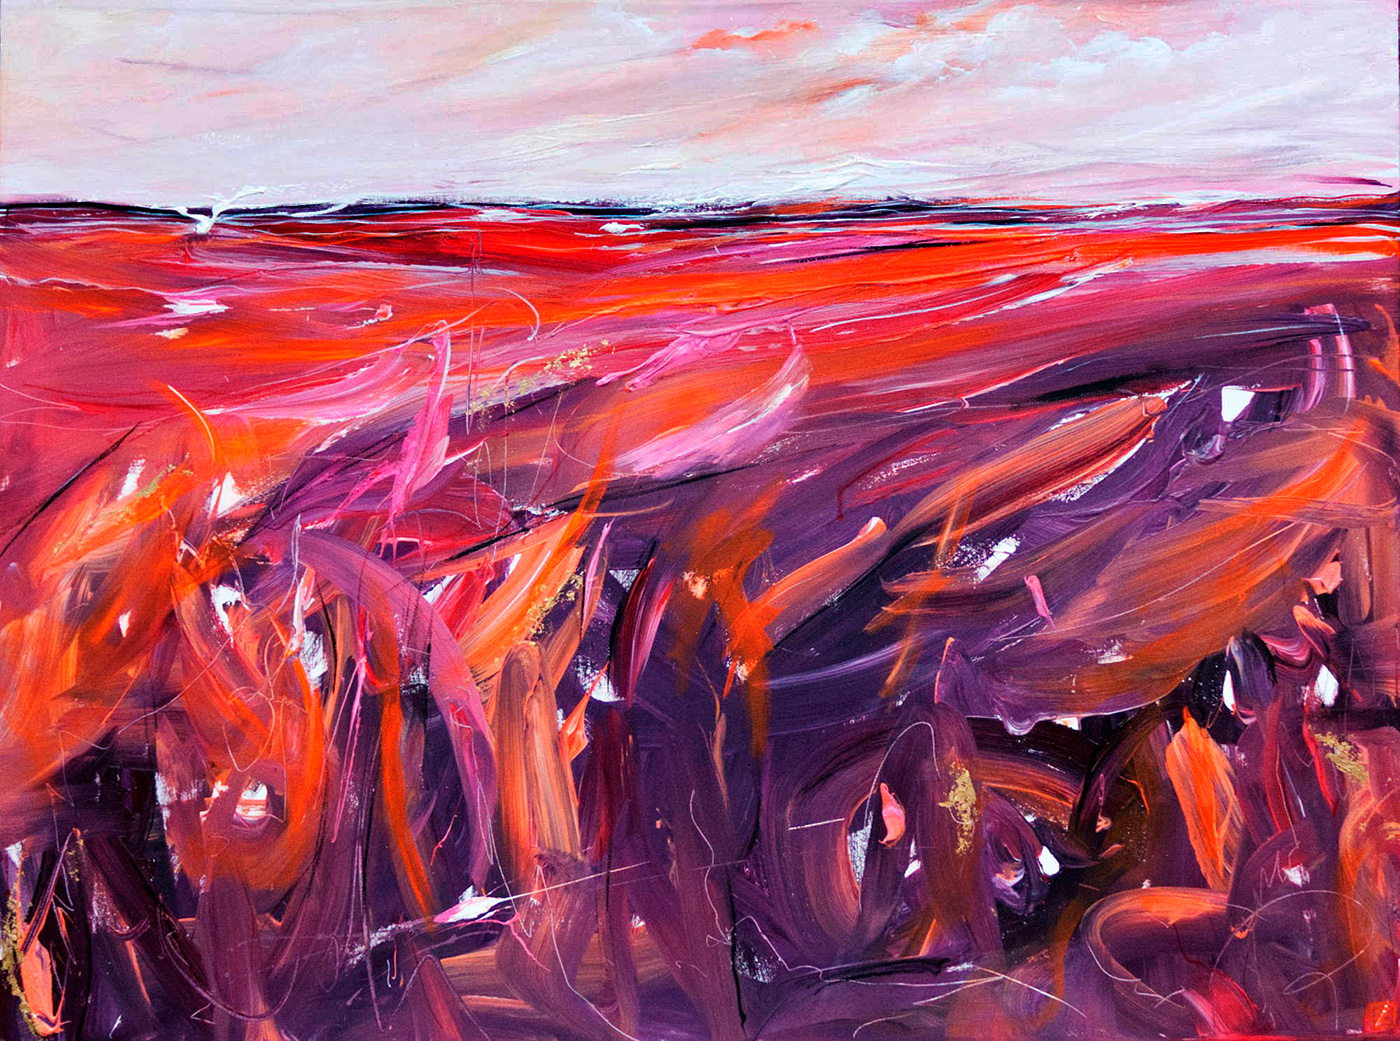 Tania Chanter - 'Clouds Conversing In Coral'